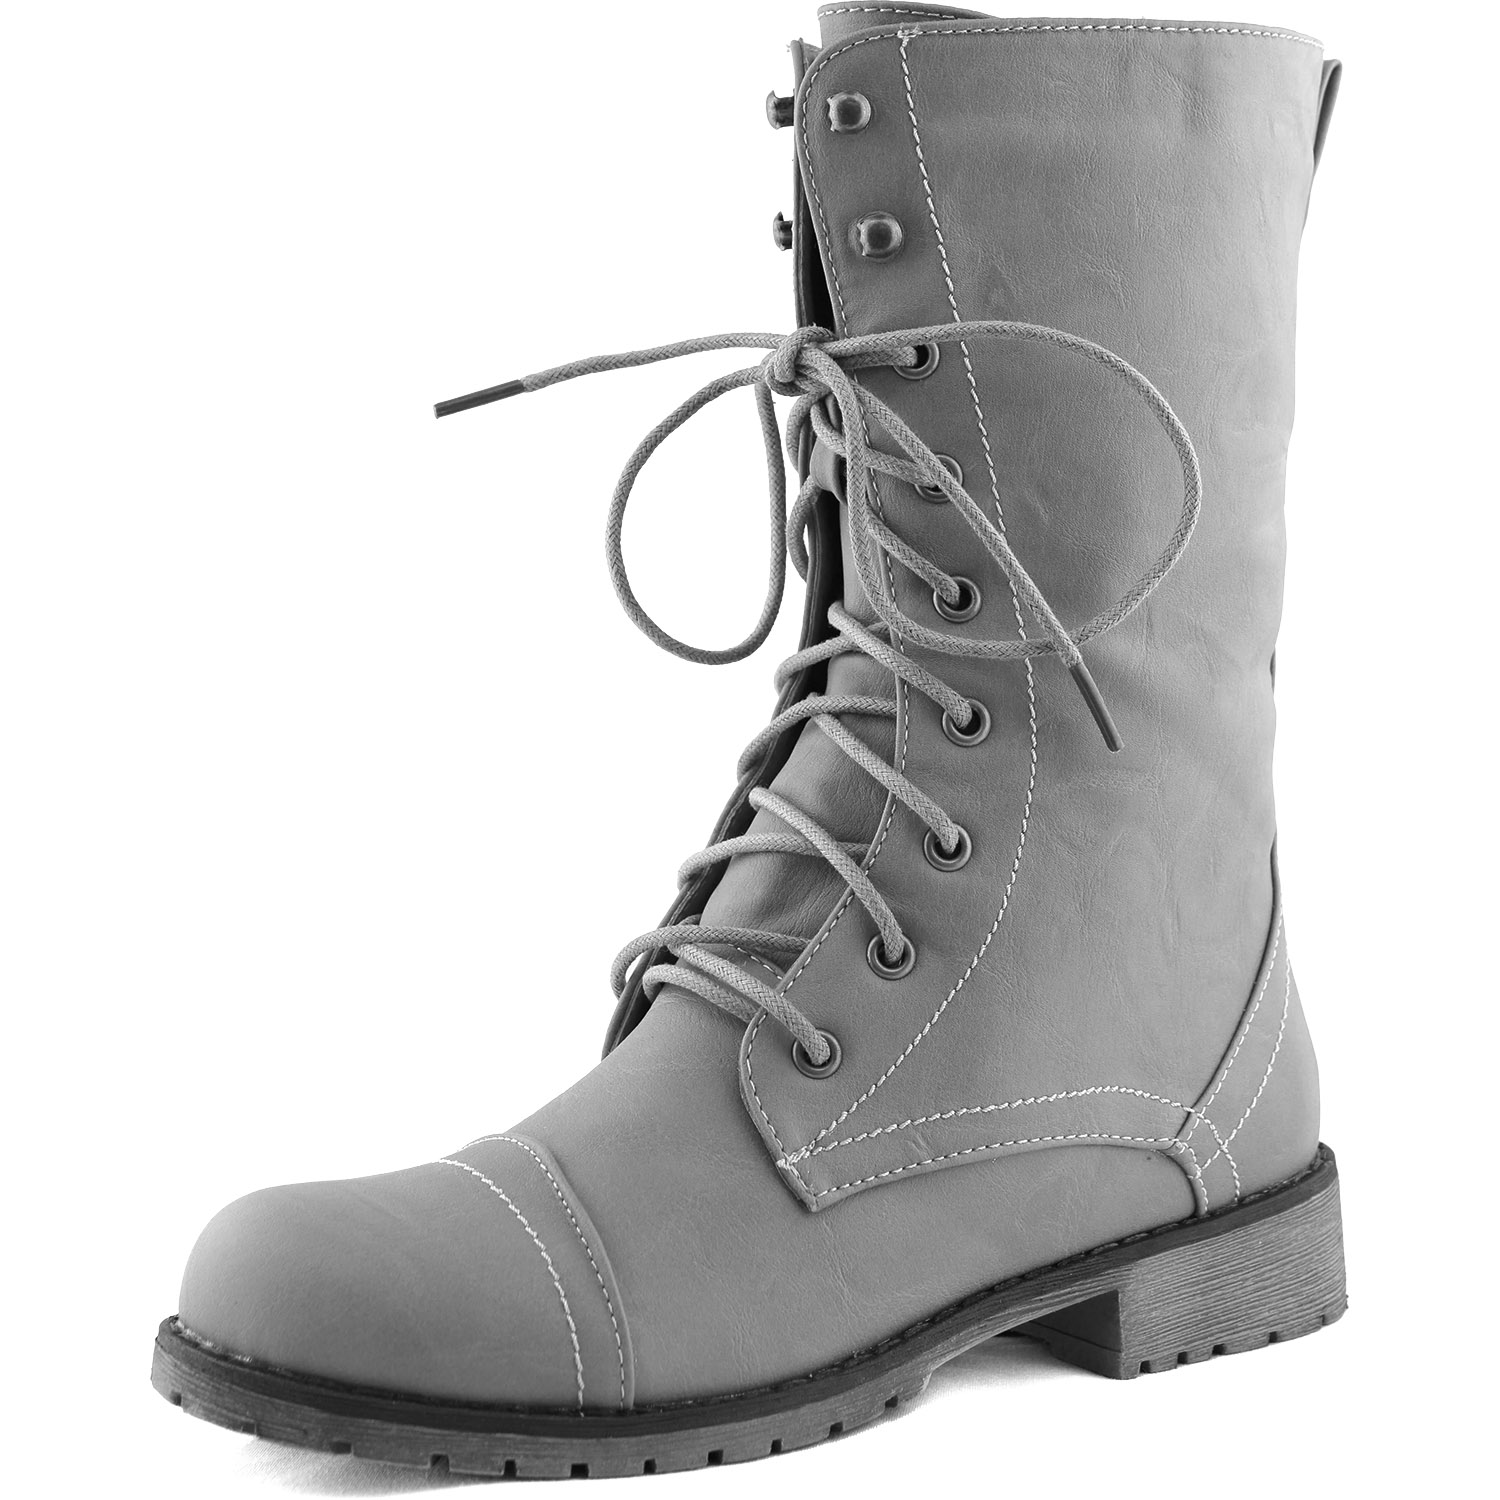 Womens Grey Boots - Cr Boot